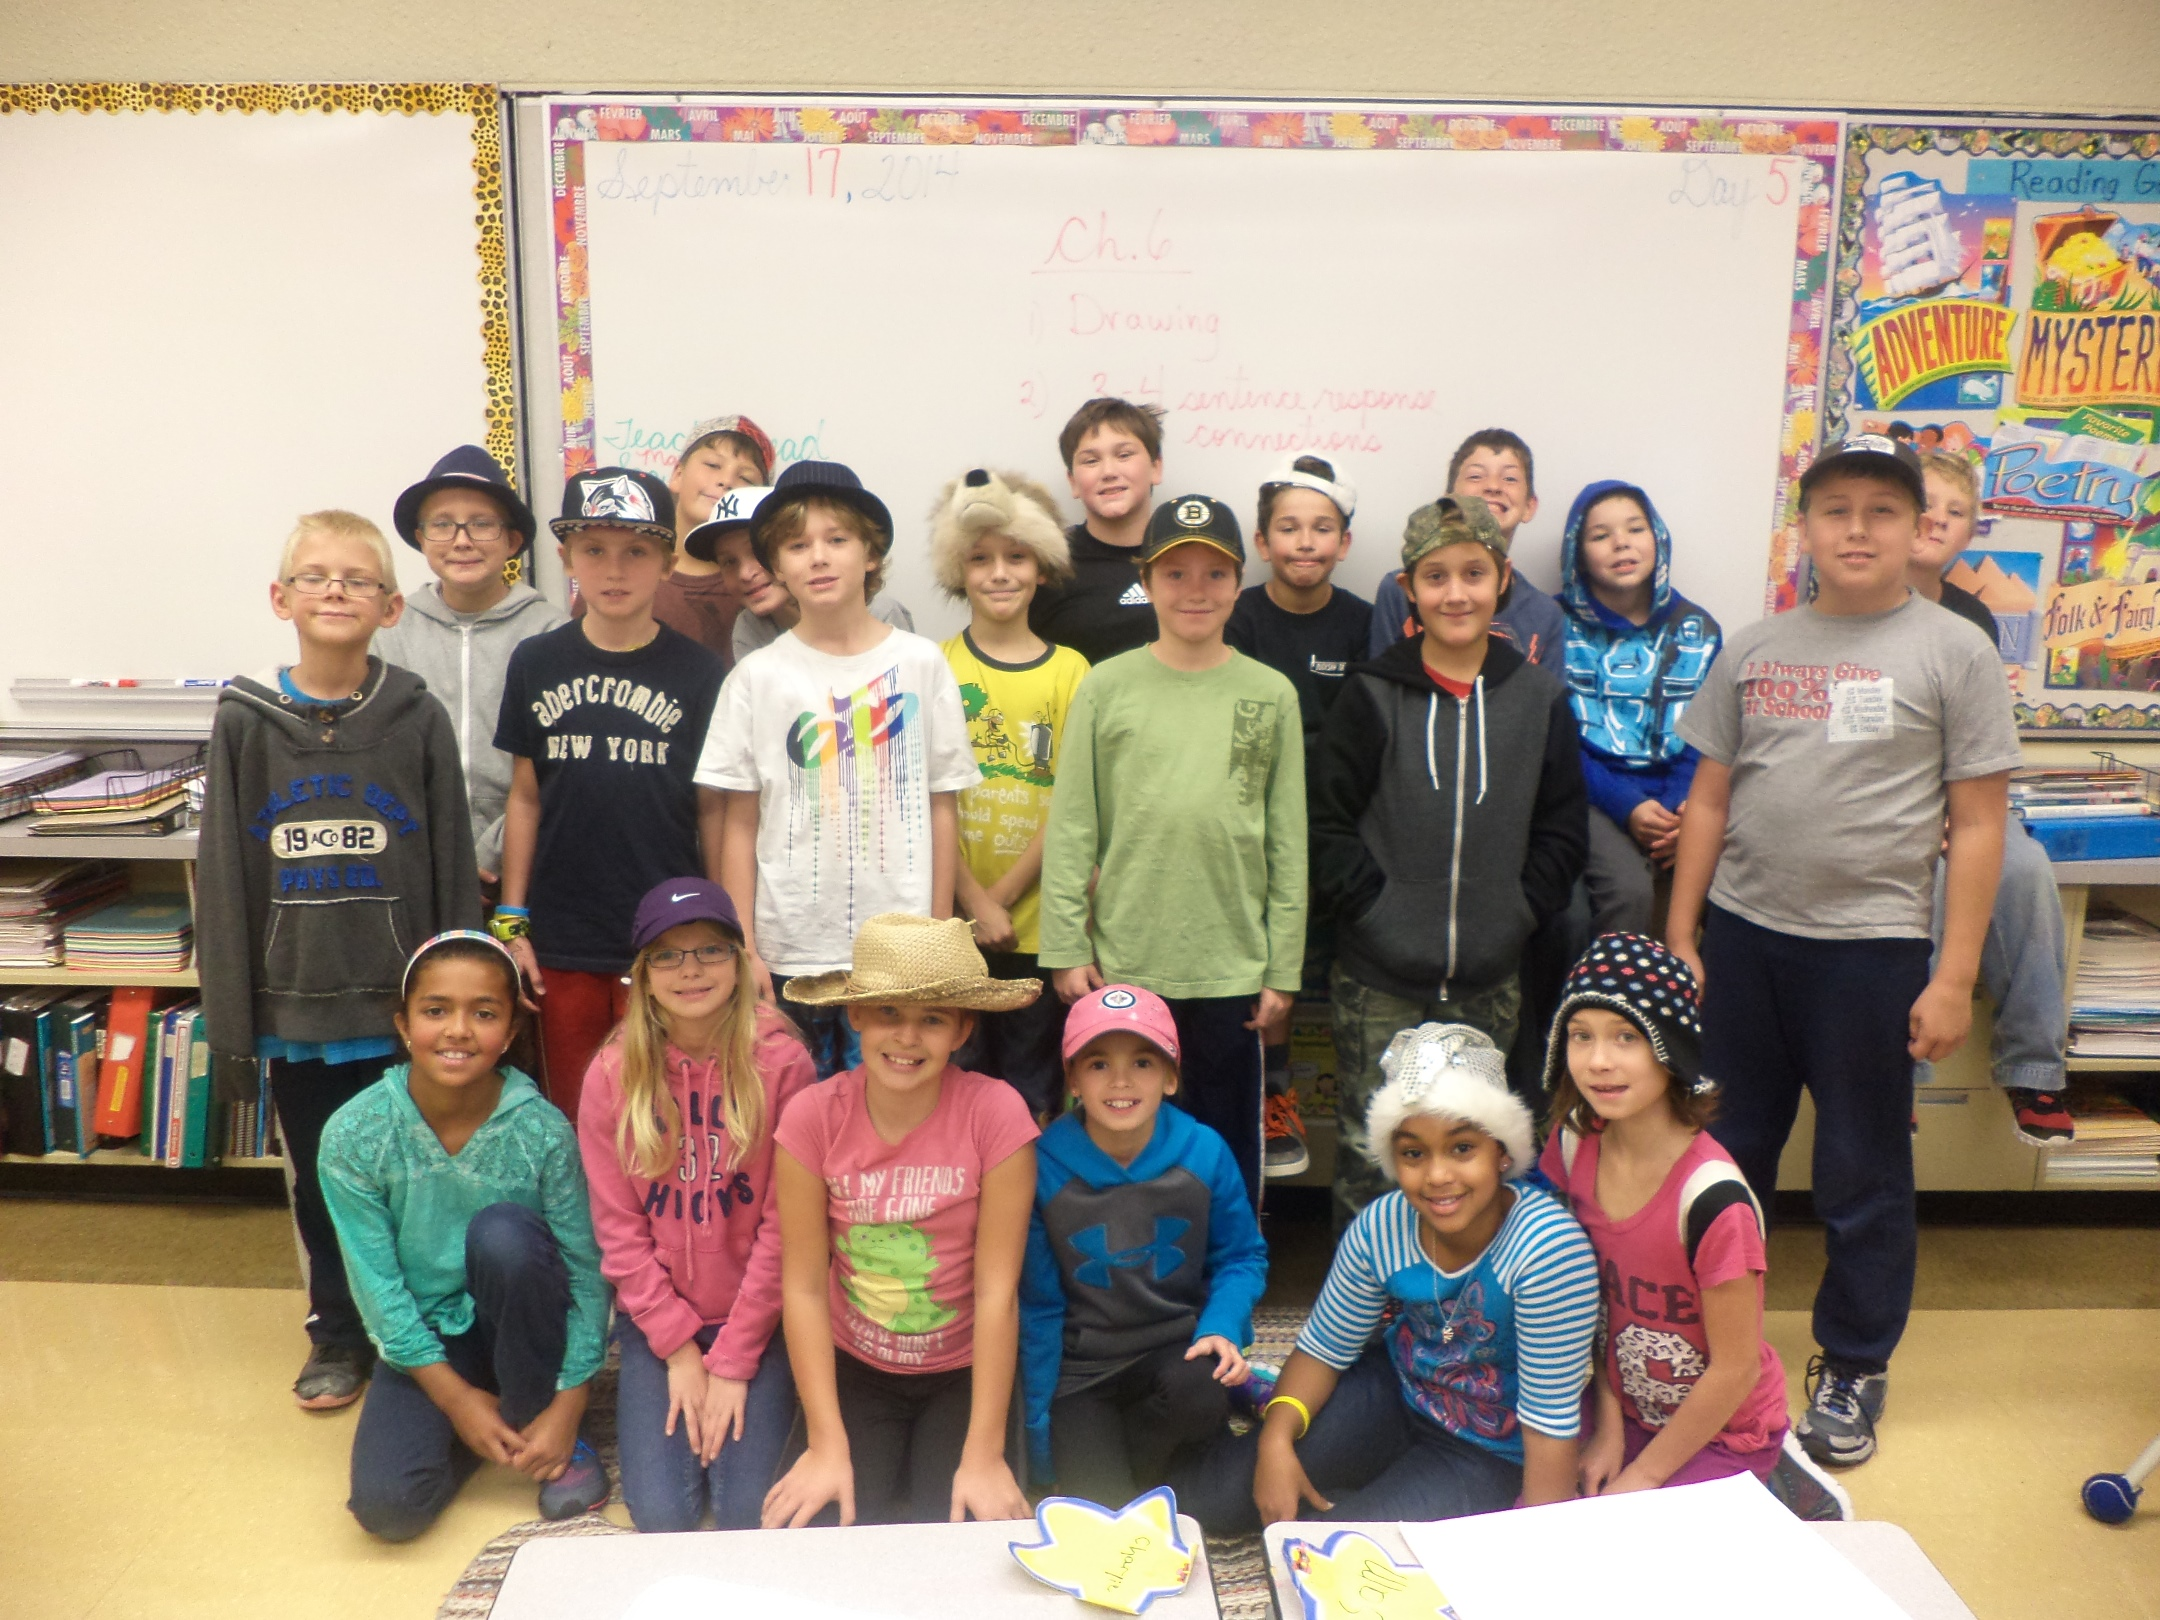 Carman Elementary Hat and Gum Day